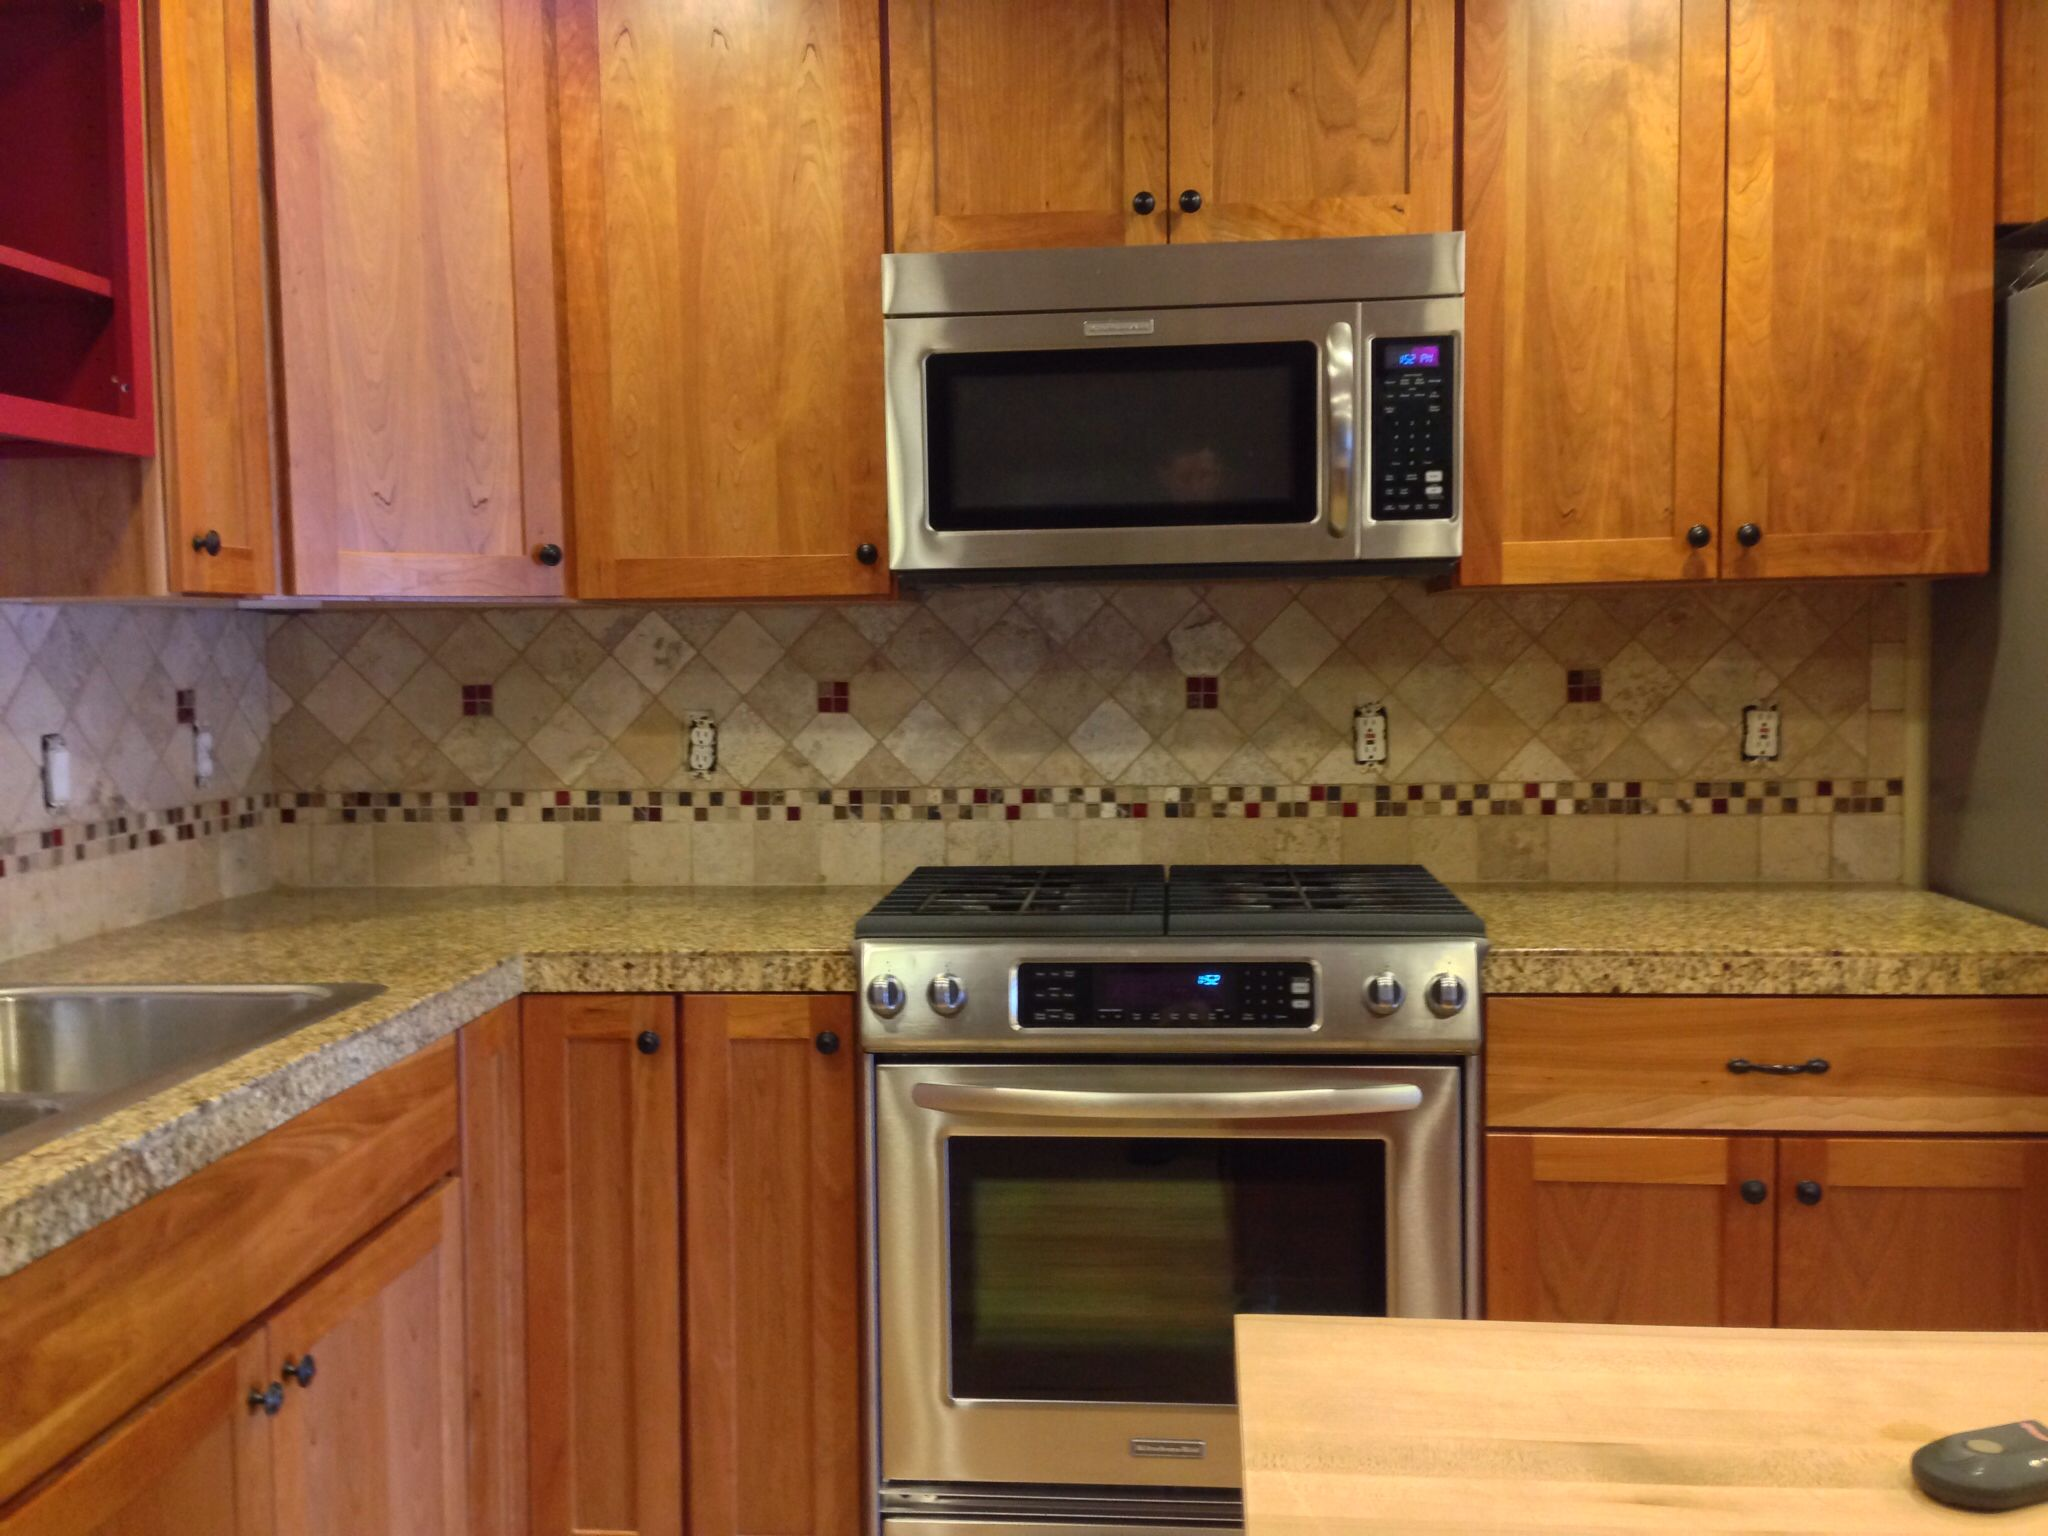 Pin By Designs By Alicia Self On Our New Home Updated Kitchen Kitchen Countertops Kitchen